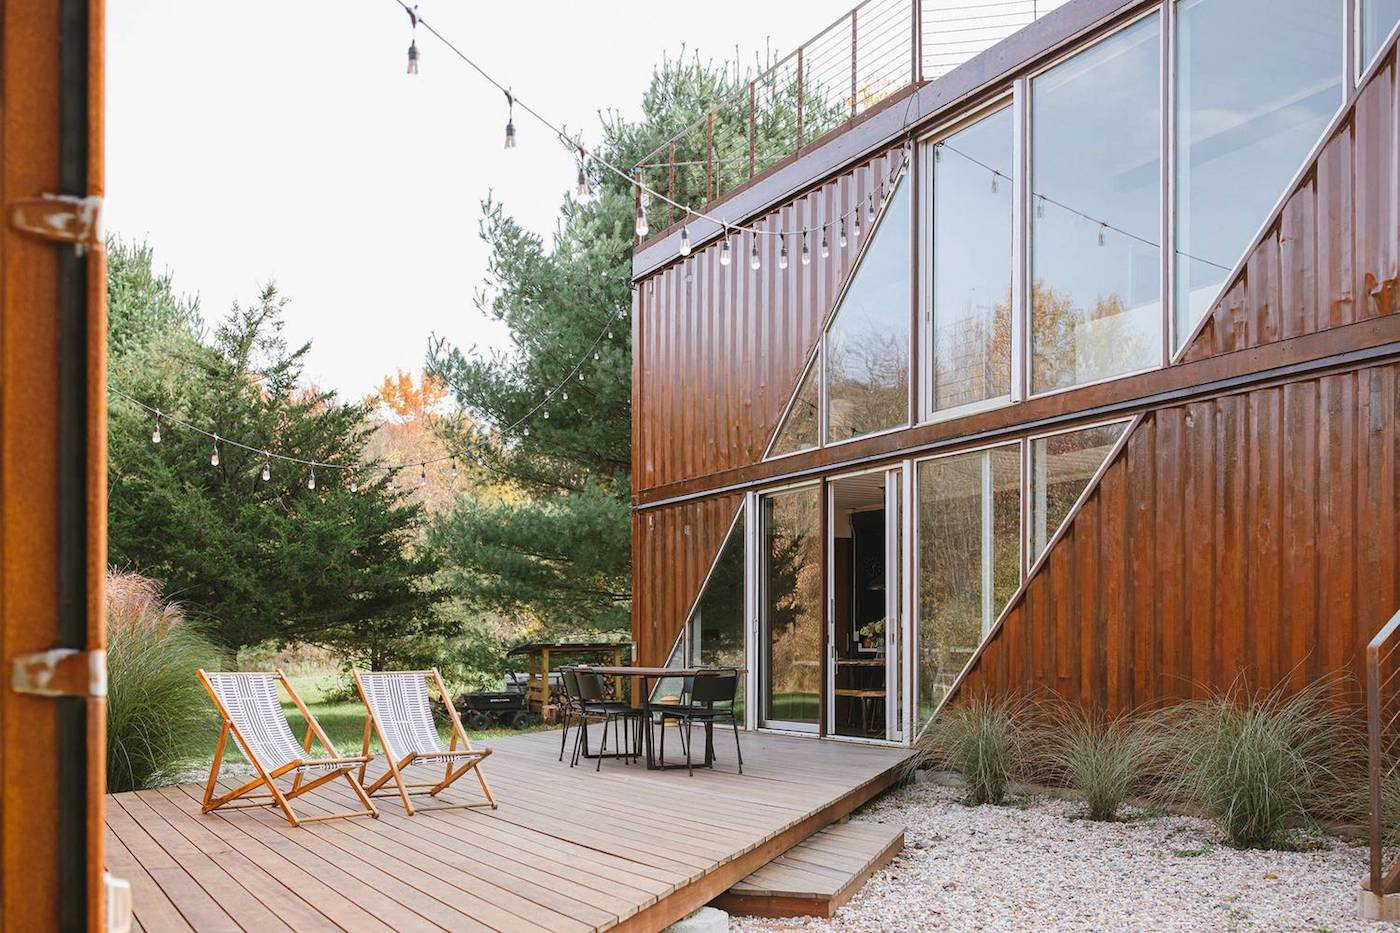 Shipping container home with timber deck